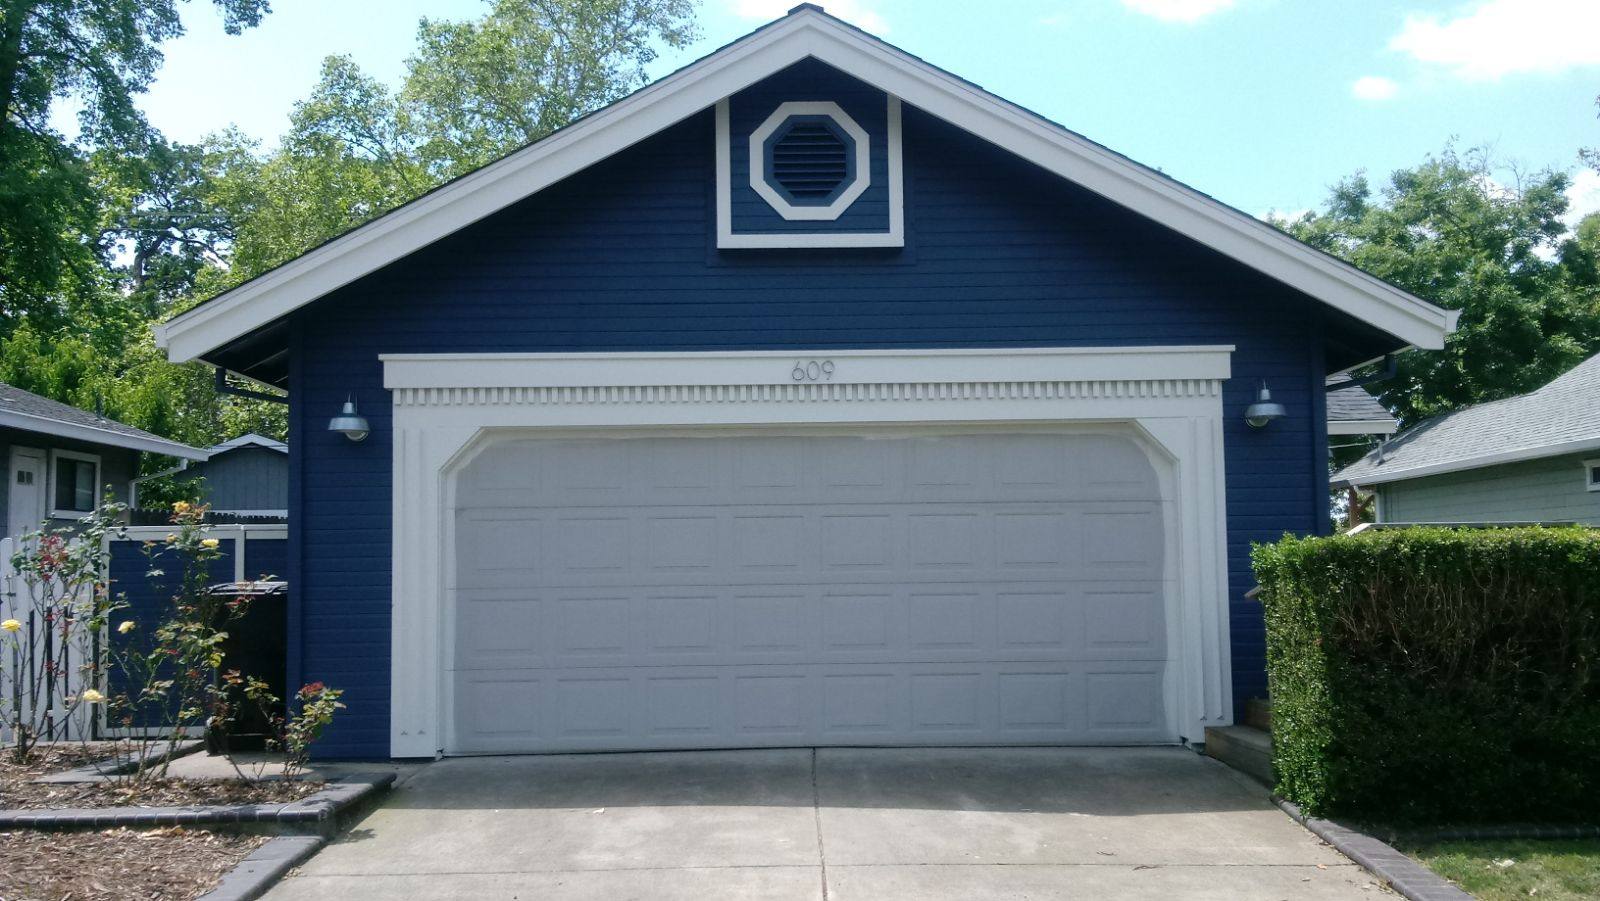 2017 05 garage door bottom seal types - After Calling Us We Got To Work Finding A Garage Door That Was Their Style And Matched The House Perfectly